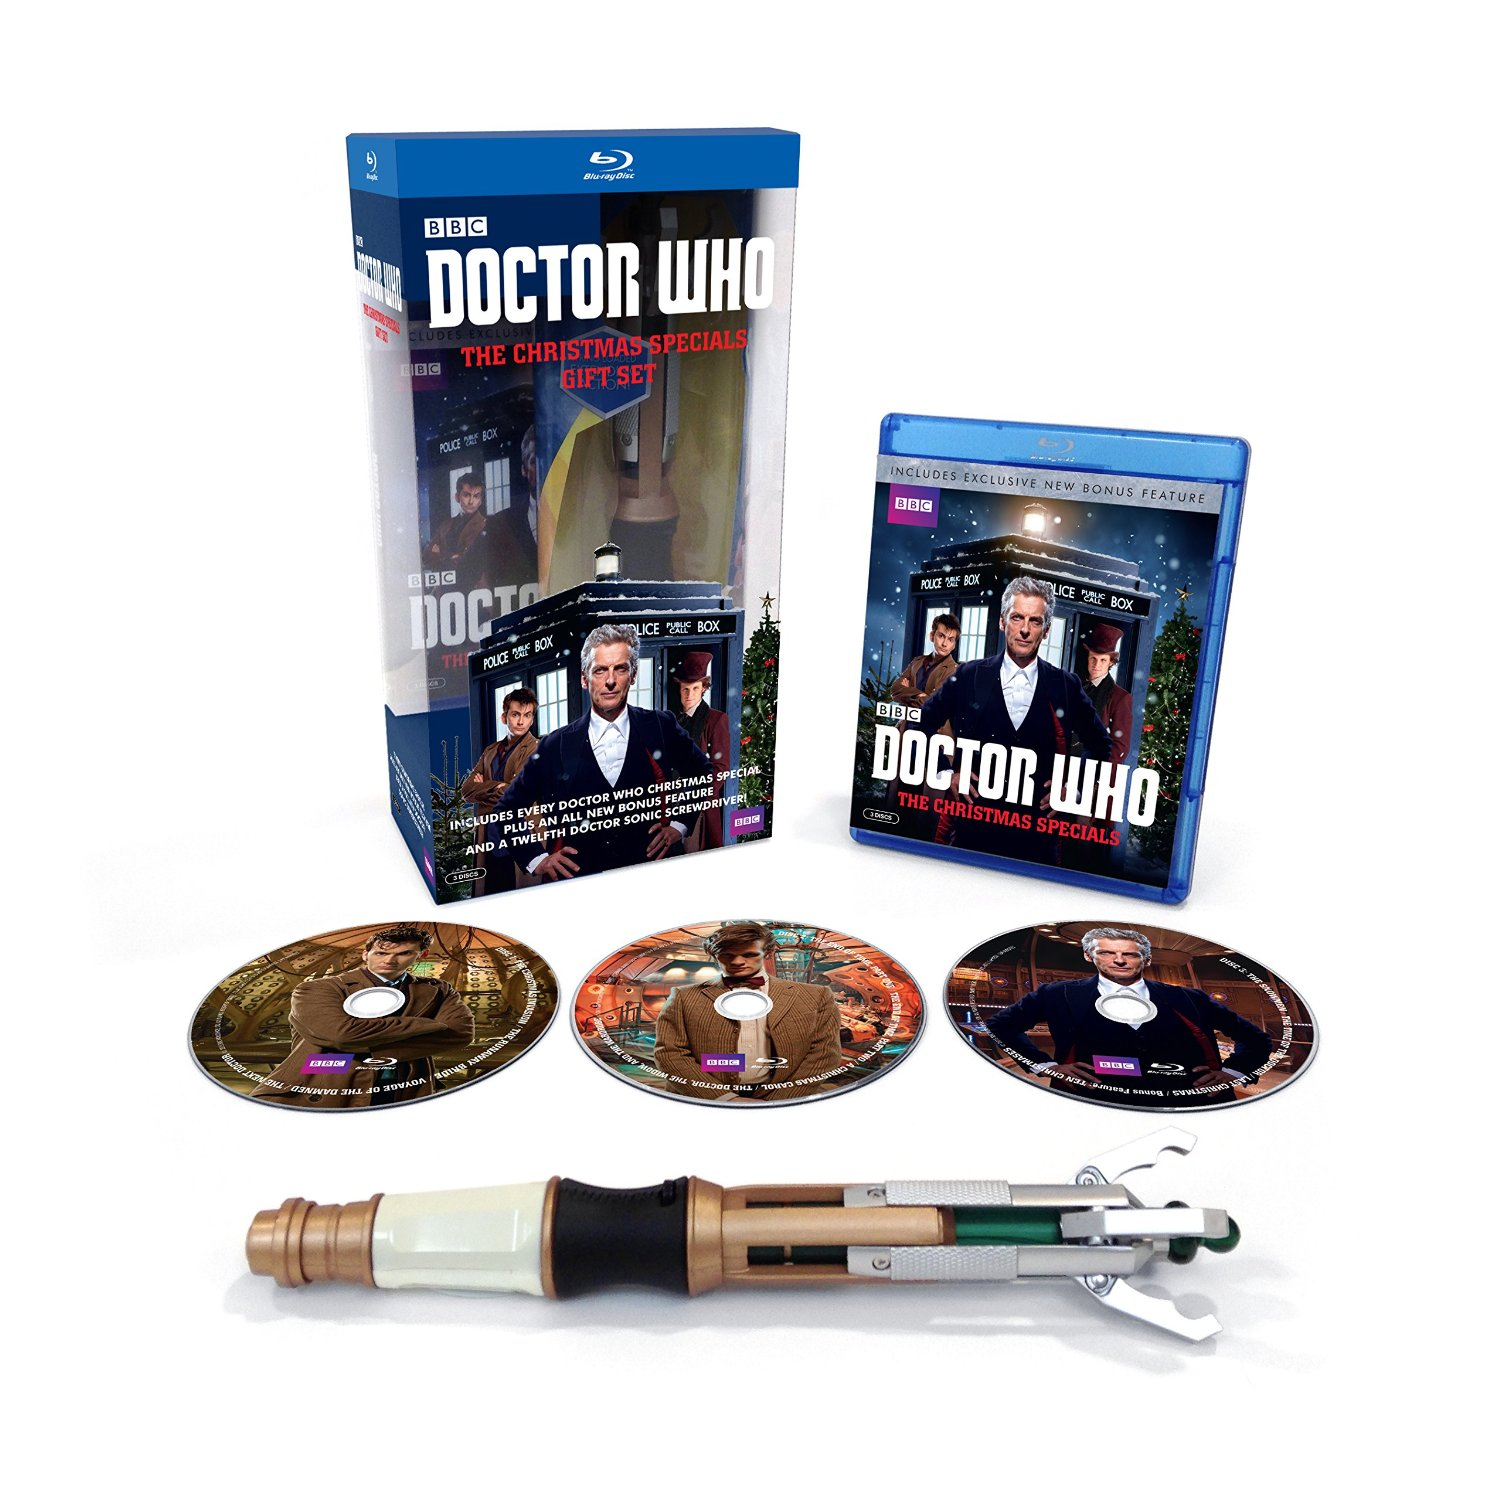 US PRE-ORDER - Doctor Who: Christmas Specials DVD & Blu-Ray Box Sets